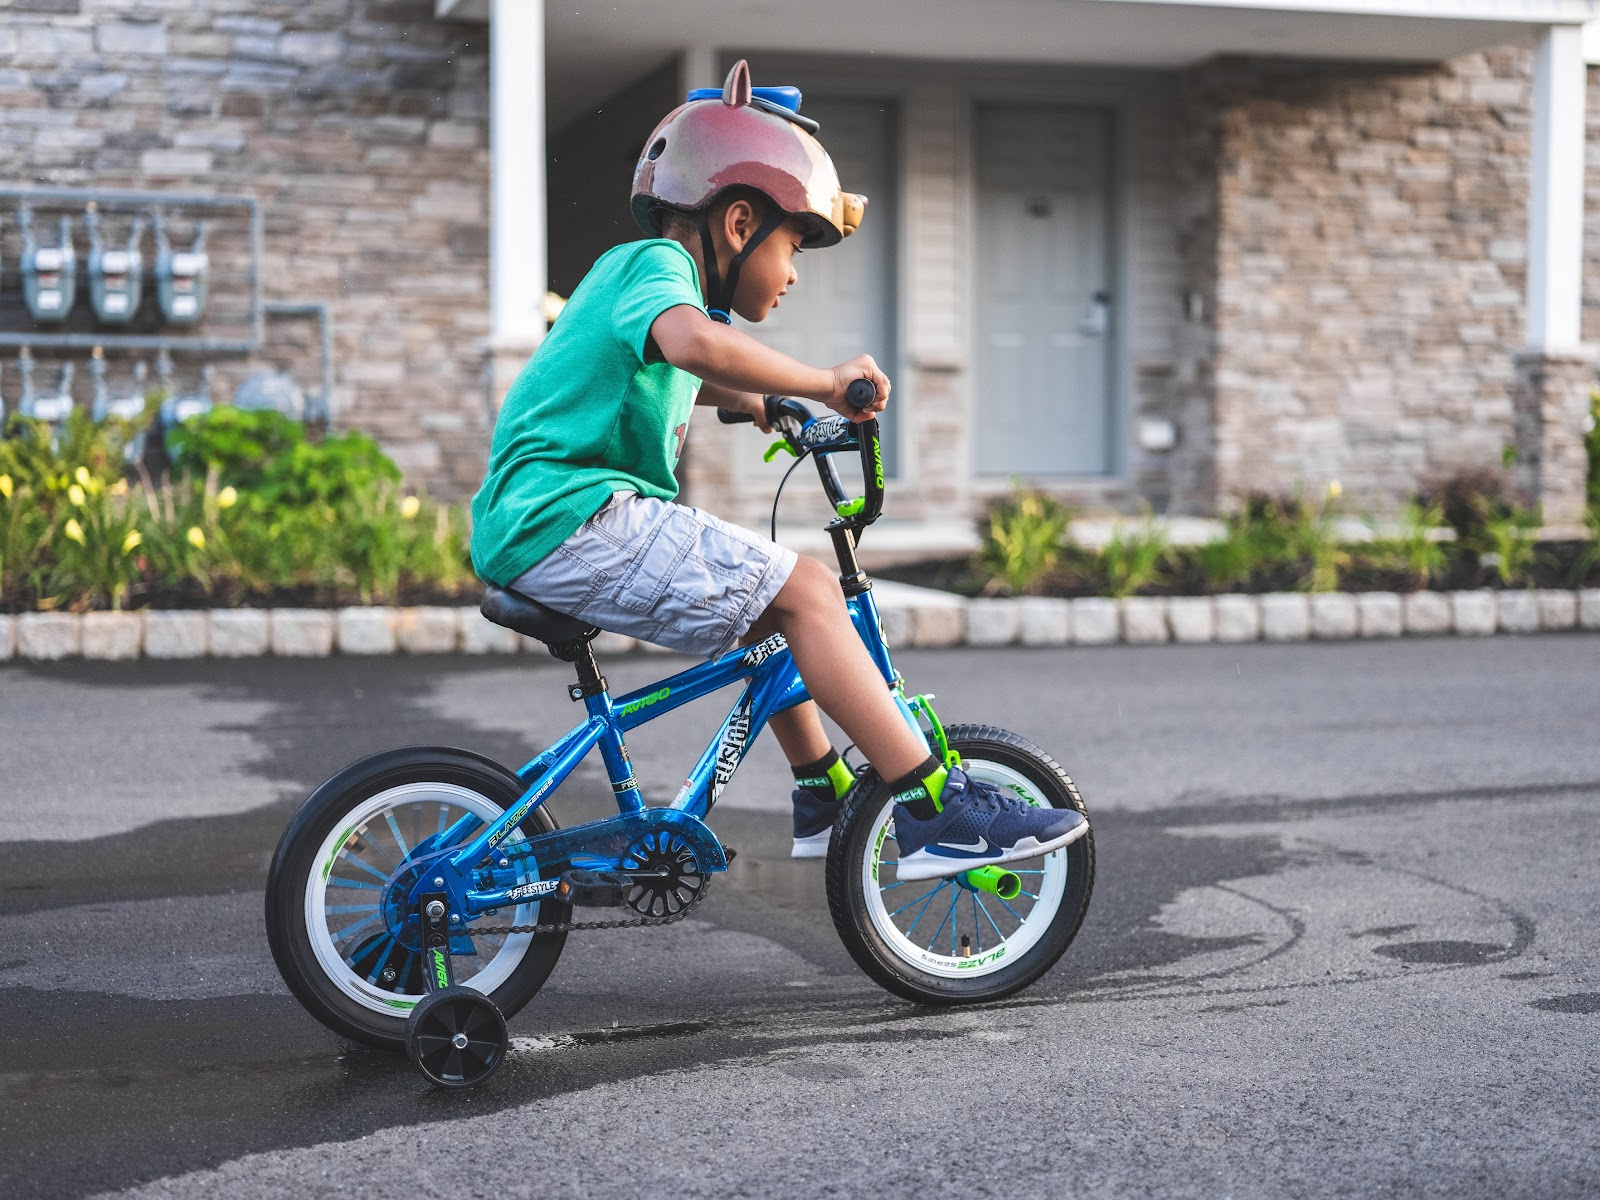 young boy riding bicycle street shelter in place home organization bikes